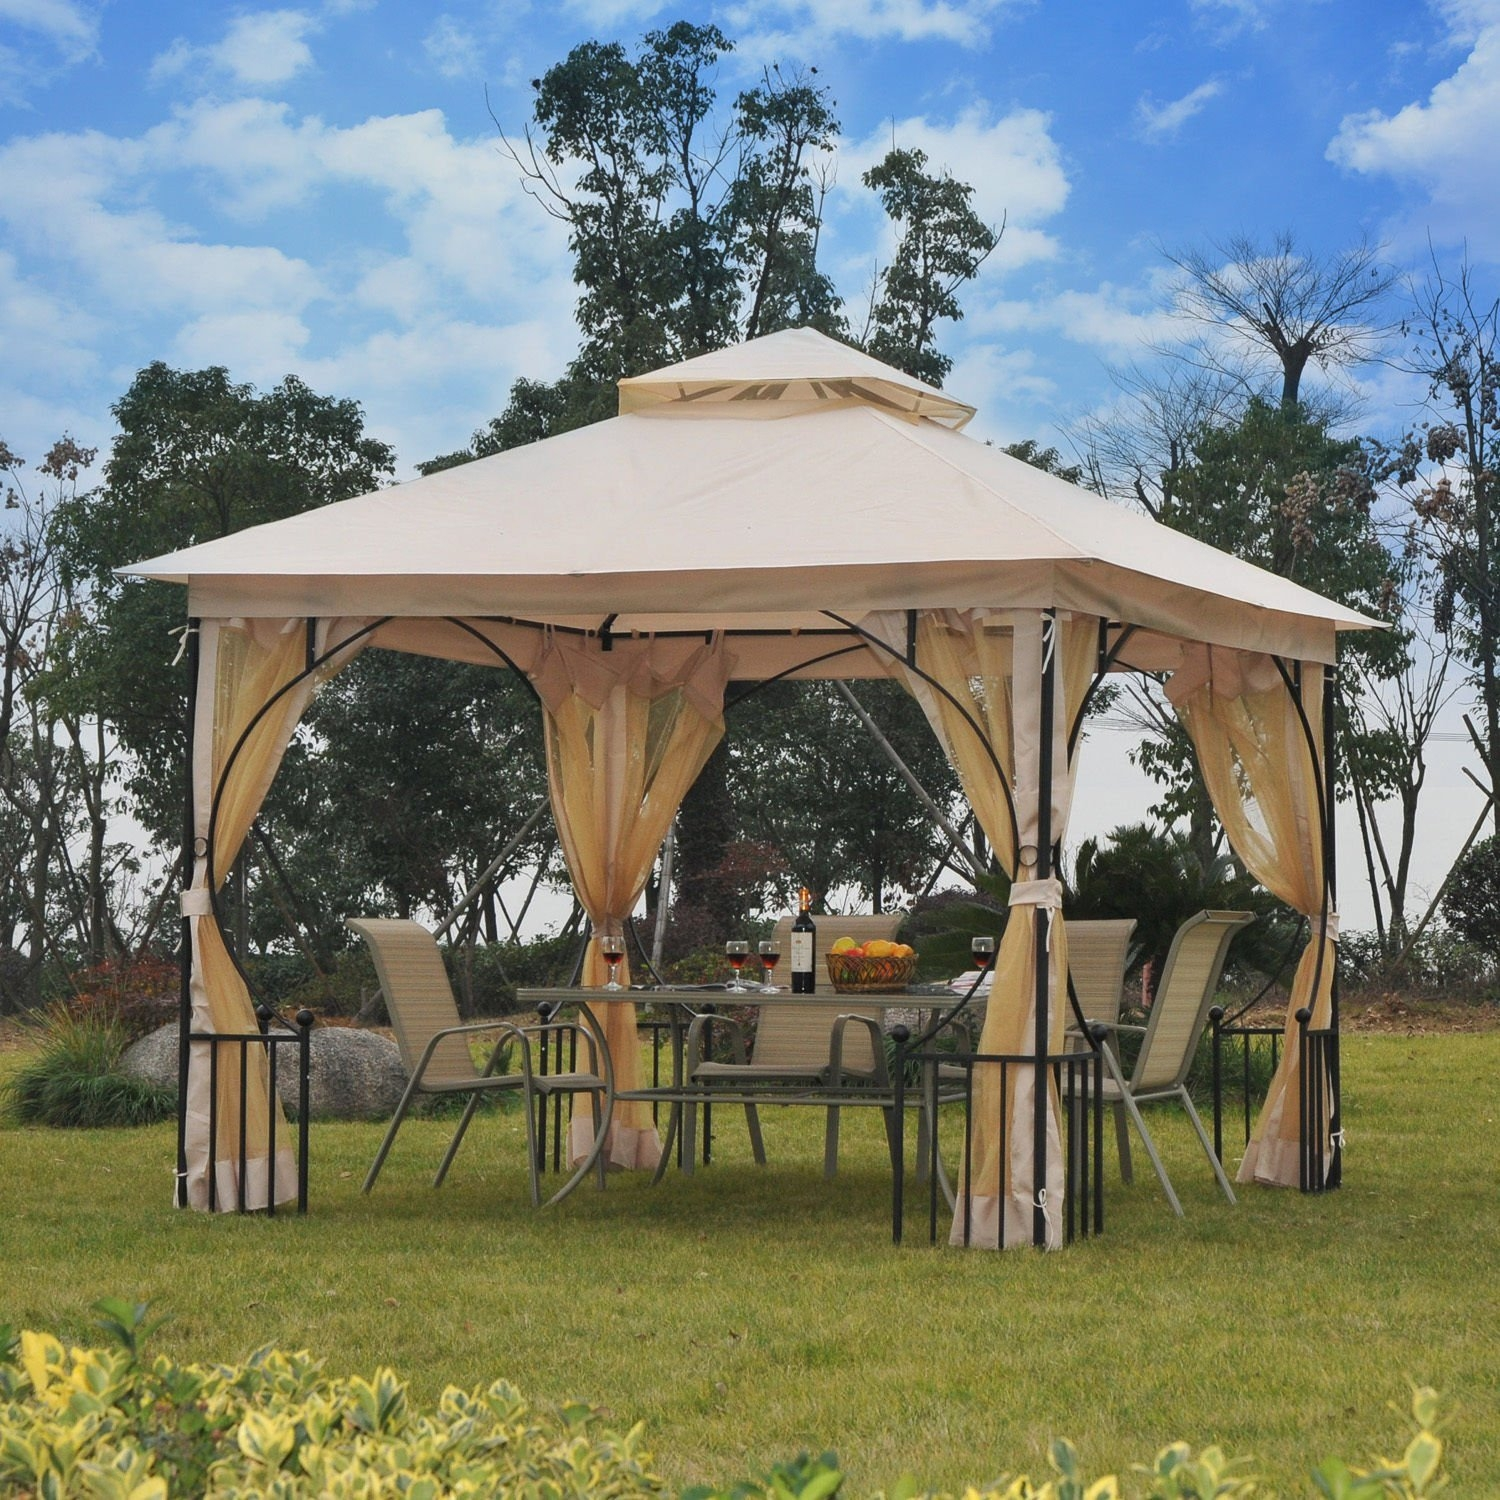 New MTN-G 10'x10' Gazebo Canopy Net Metal Outdoor Garden Patio Party